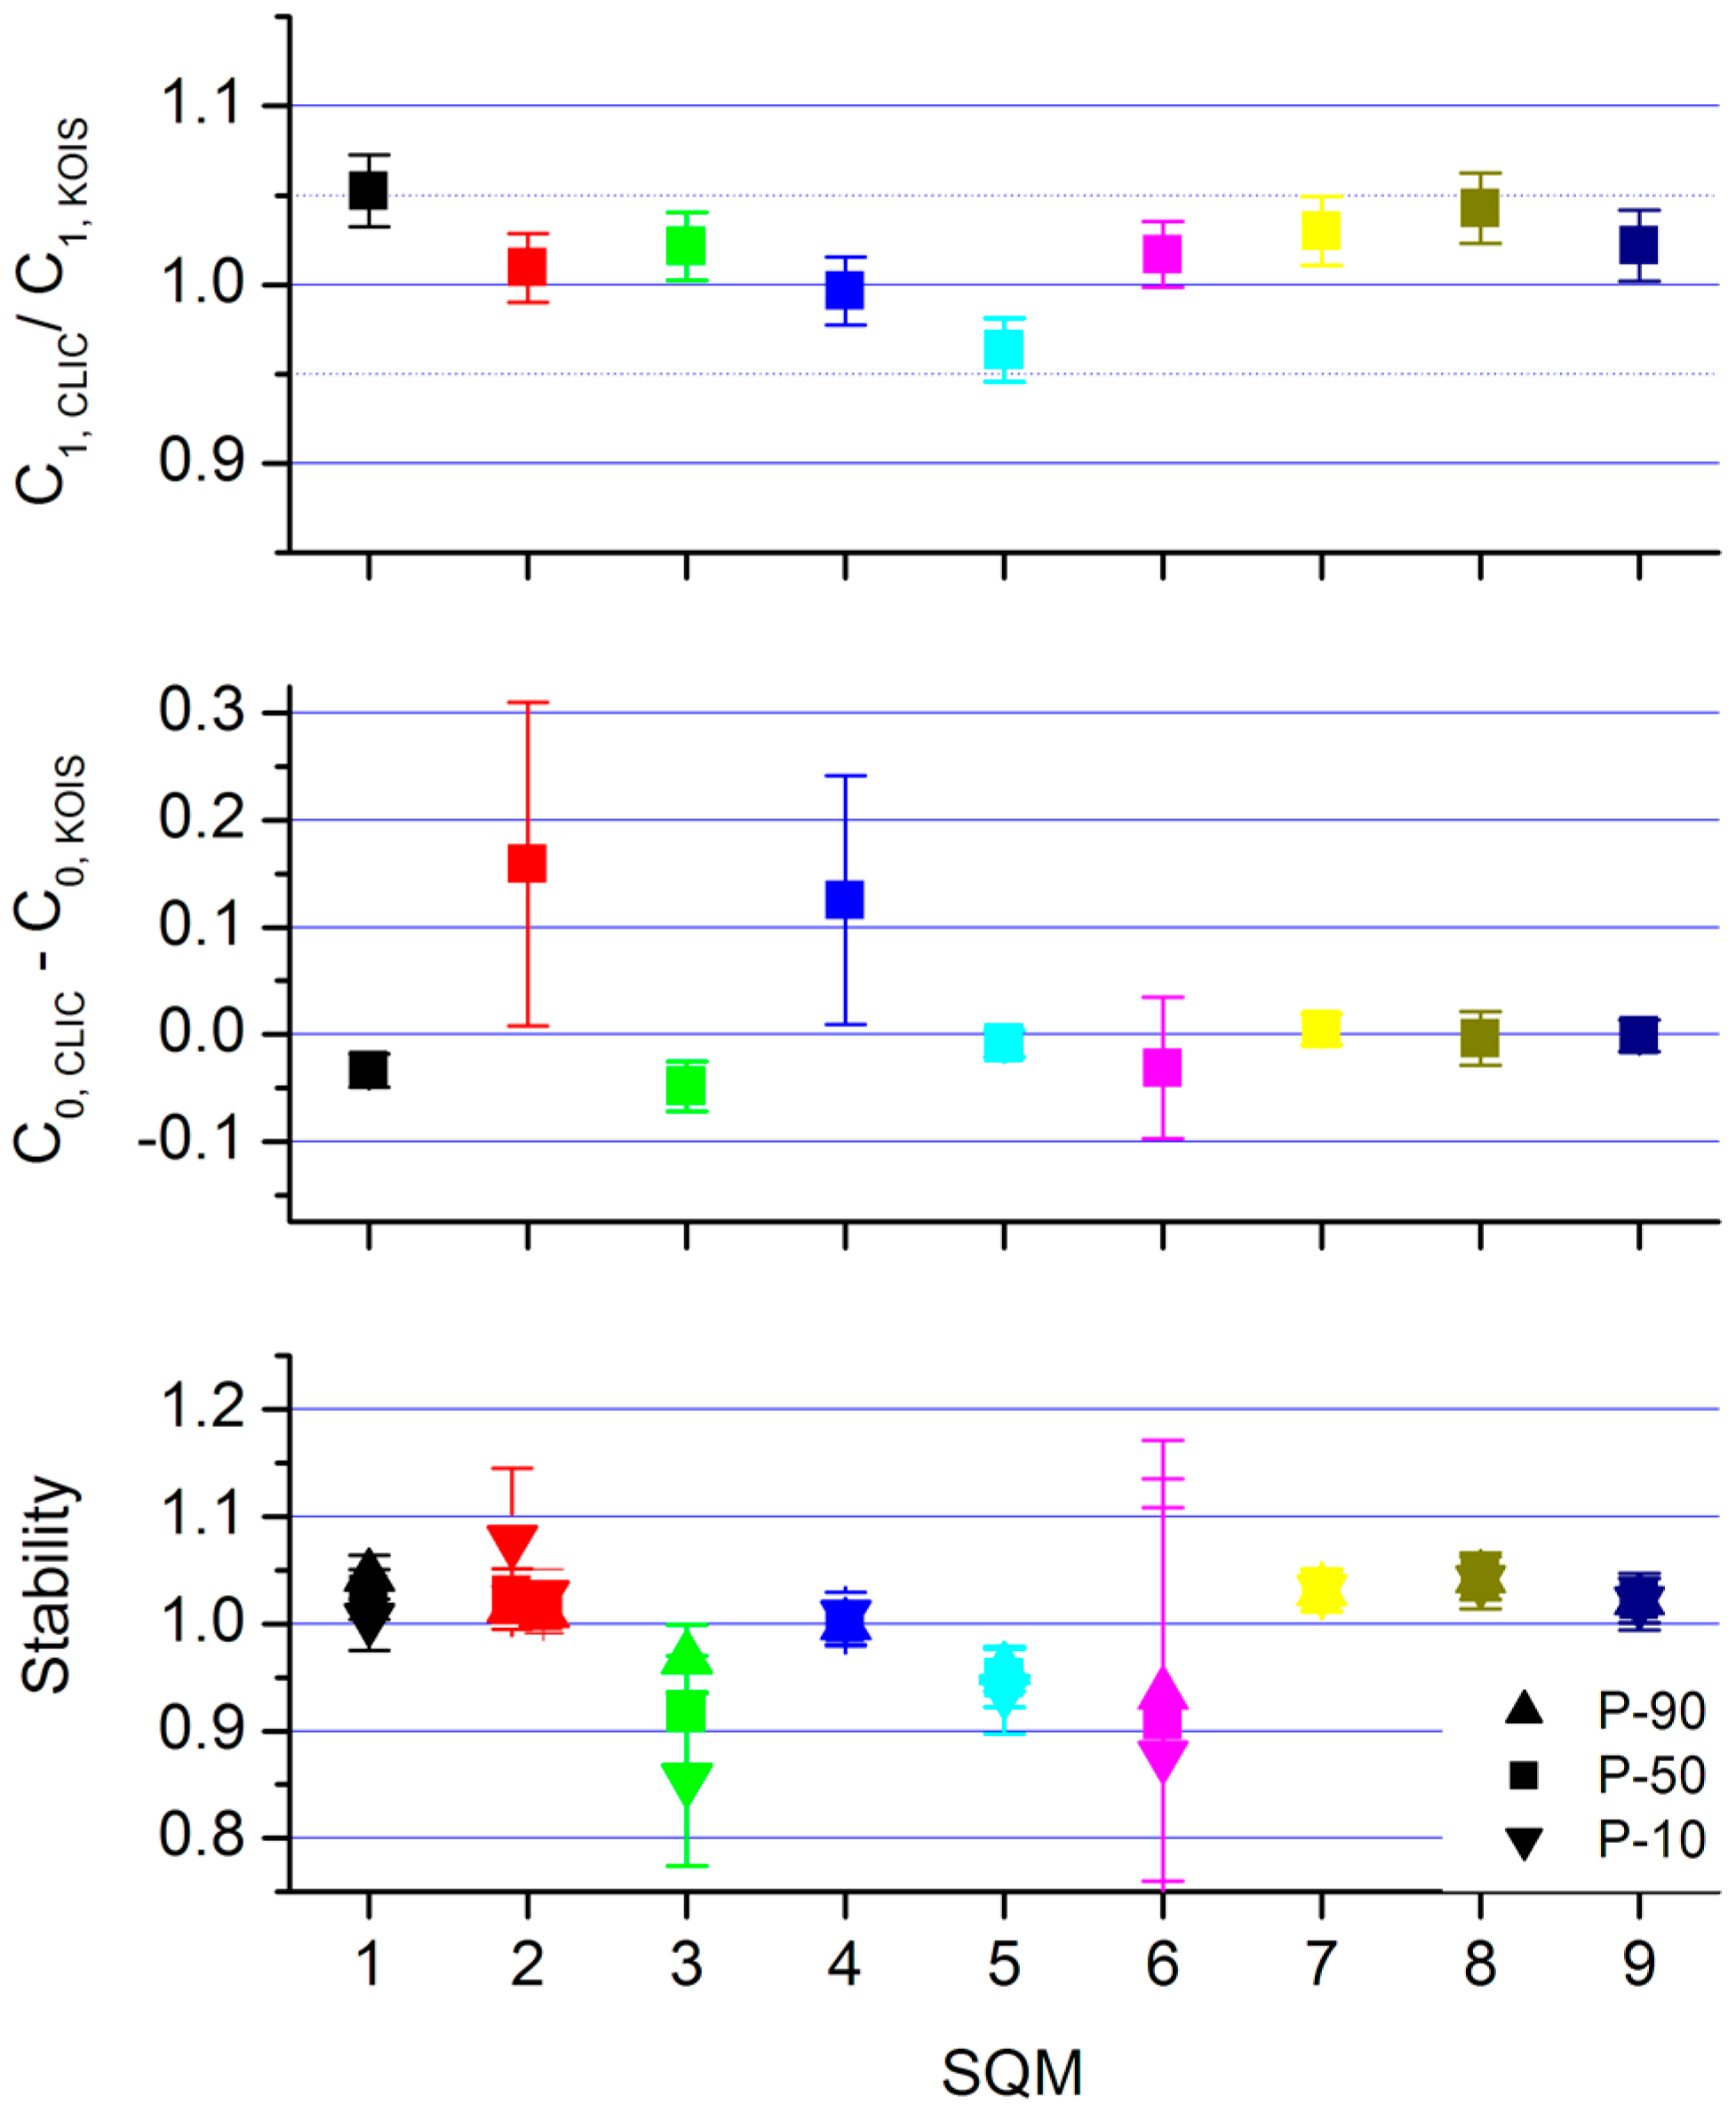 Sensors | Free Full-Text | Stability of the Nine Sky Quality